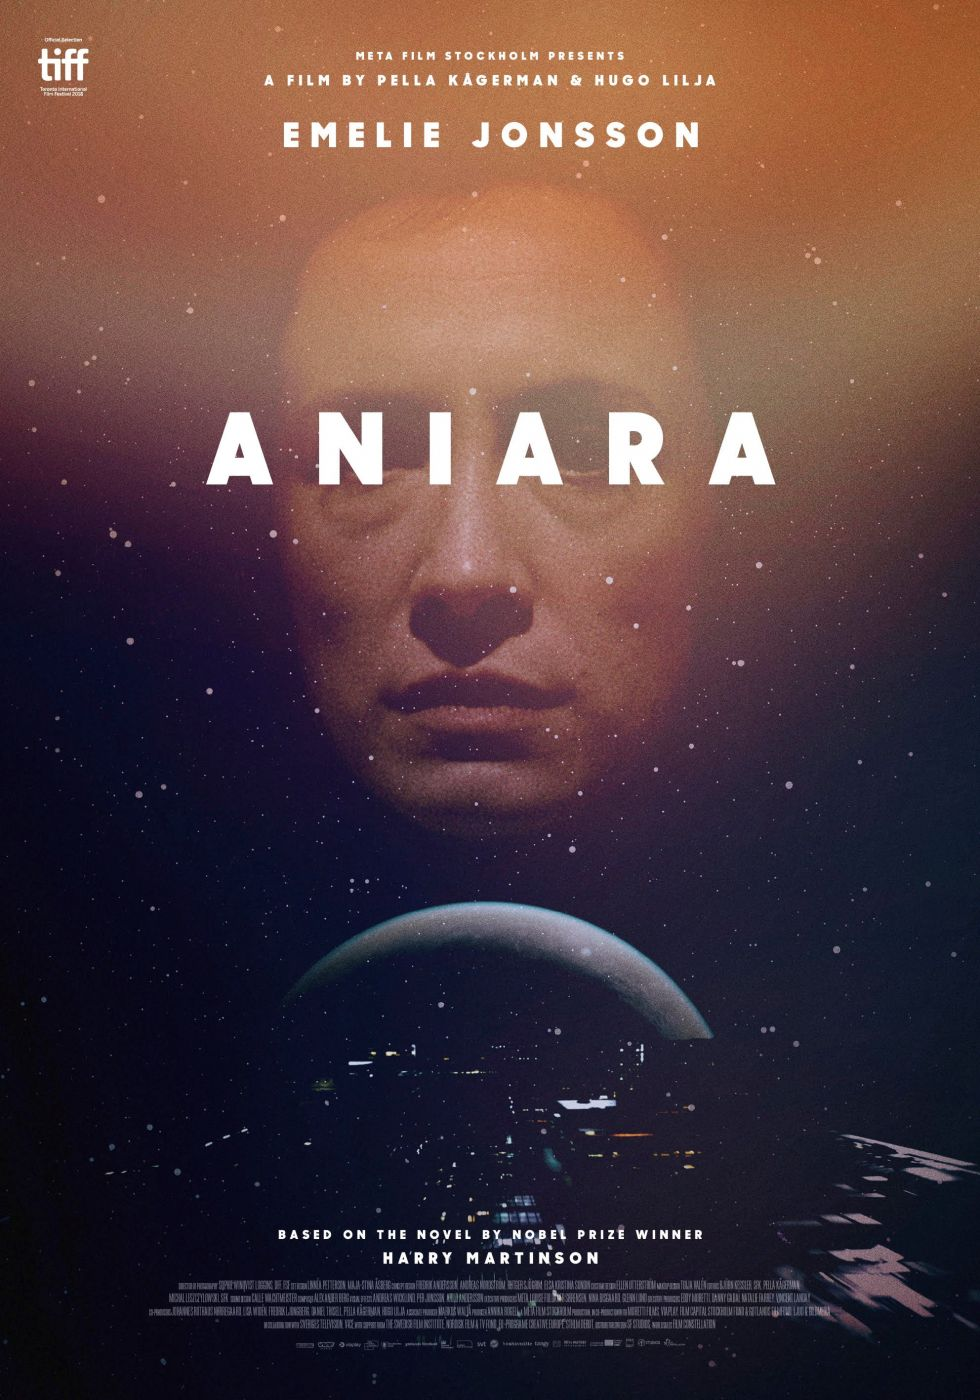 Image result for aniara film